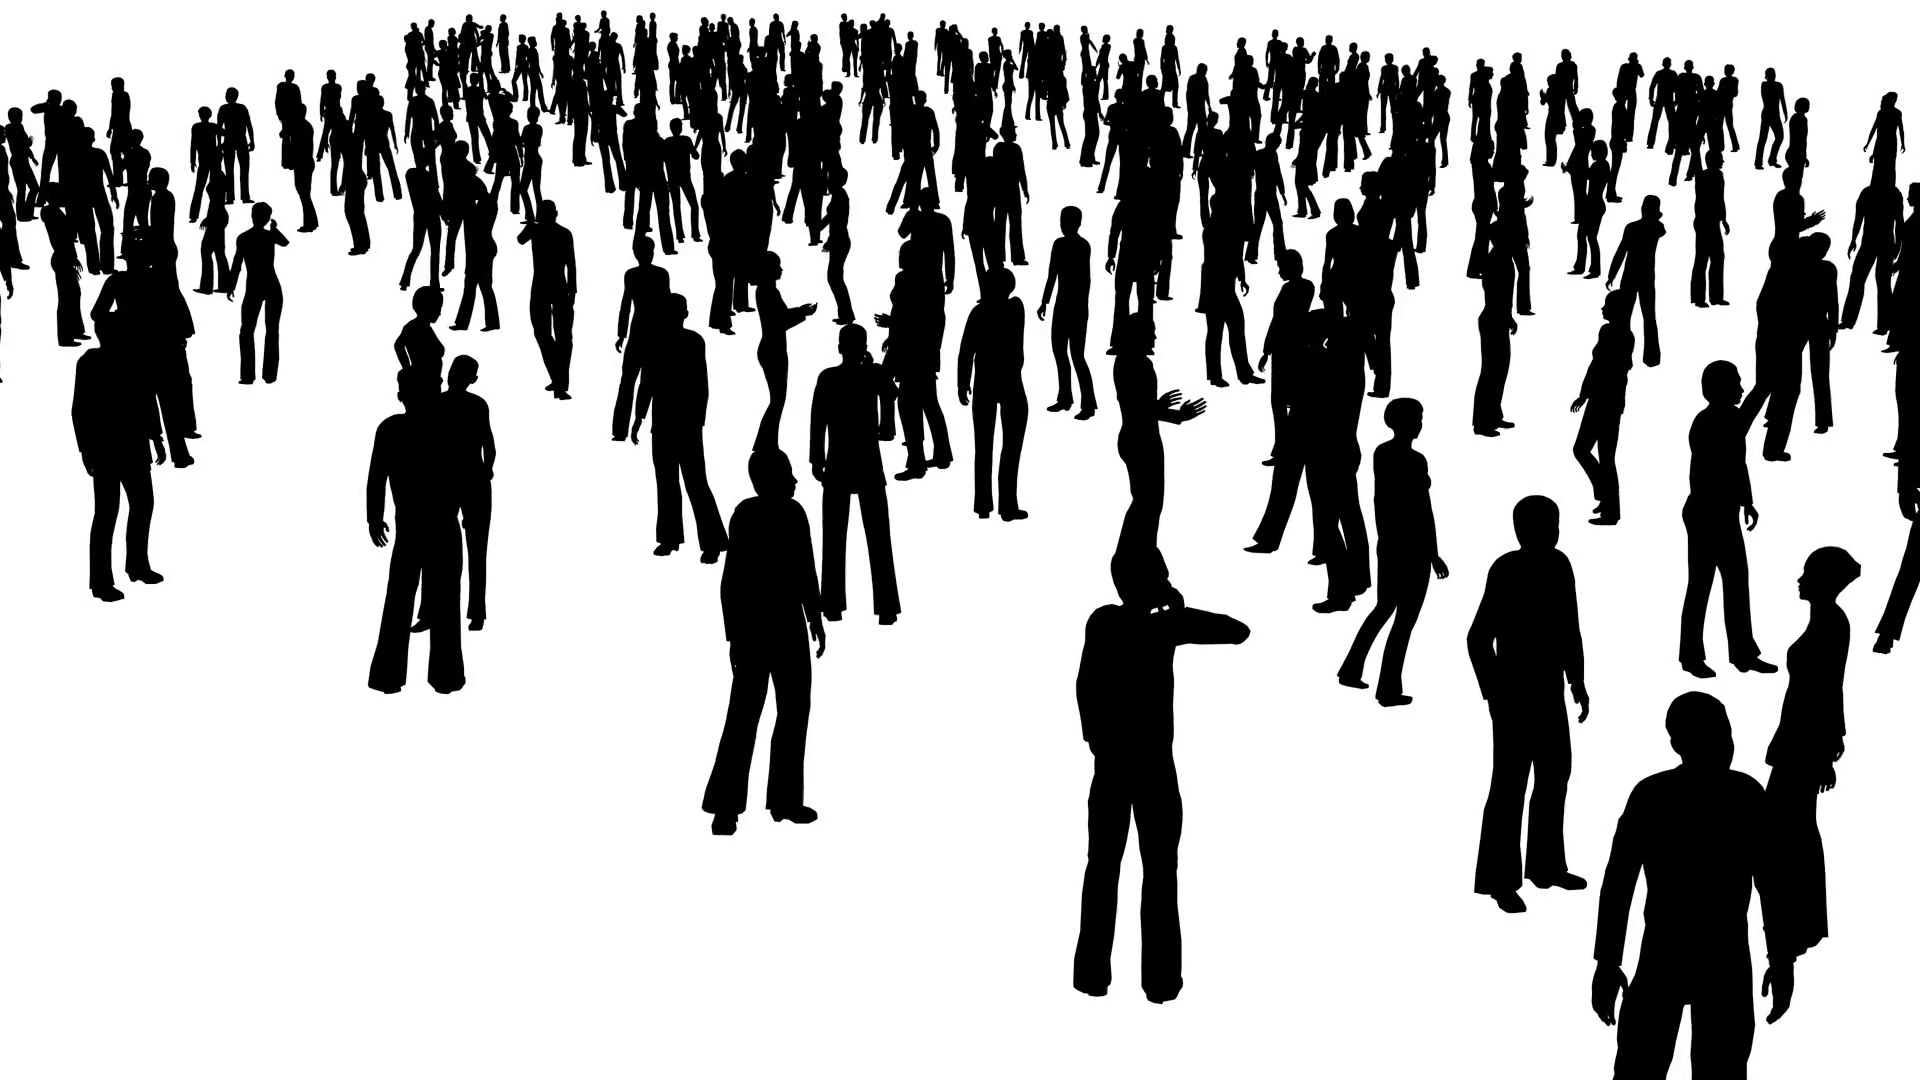 Free Images Black And White People Crowd Statue: Free Photo: Silhouette Of People